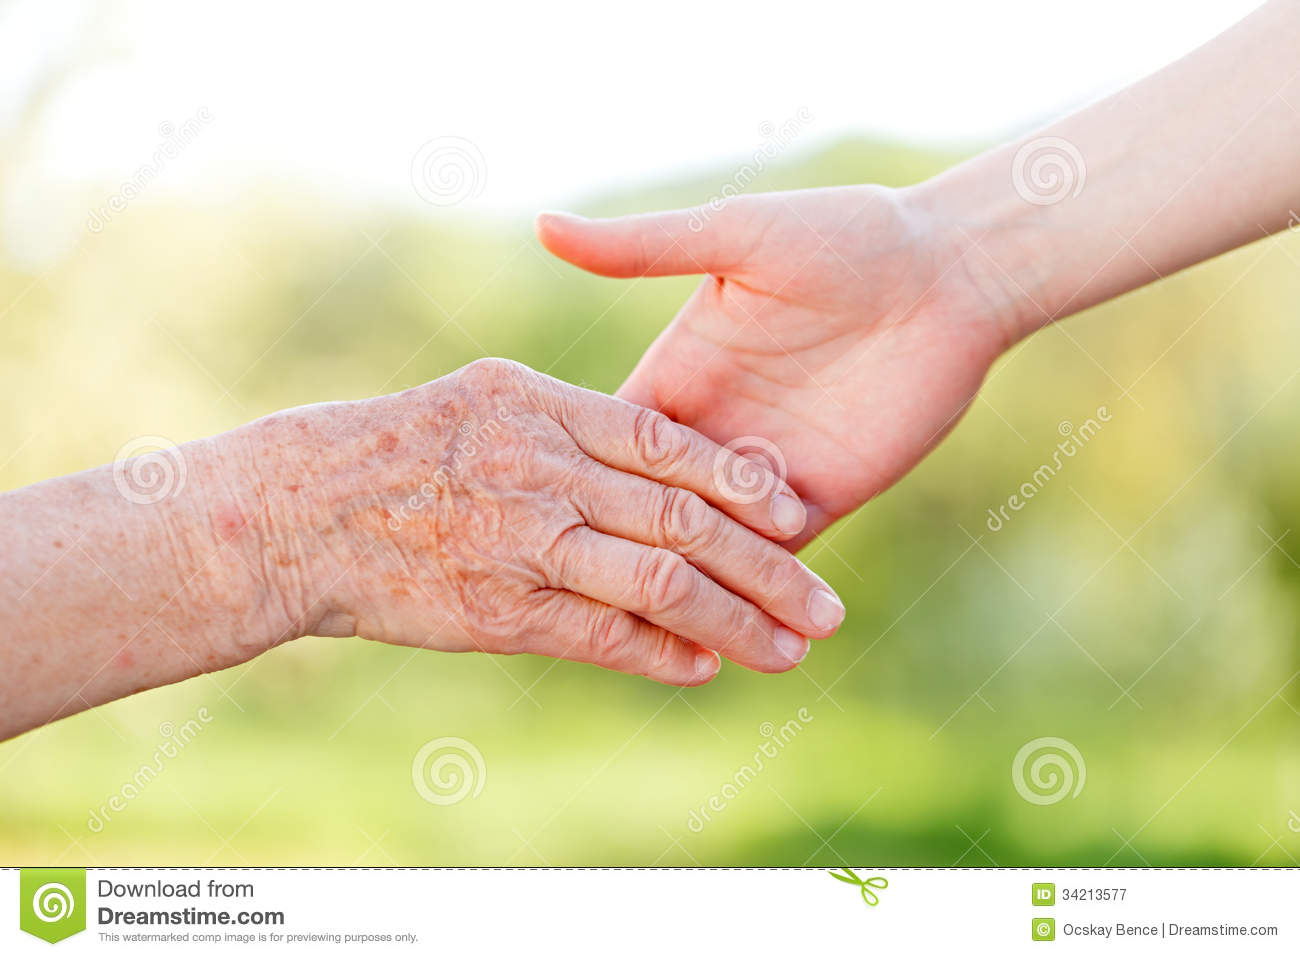 helping hands images free elderly care stock image image of green flower aiding 3553